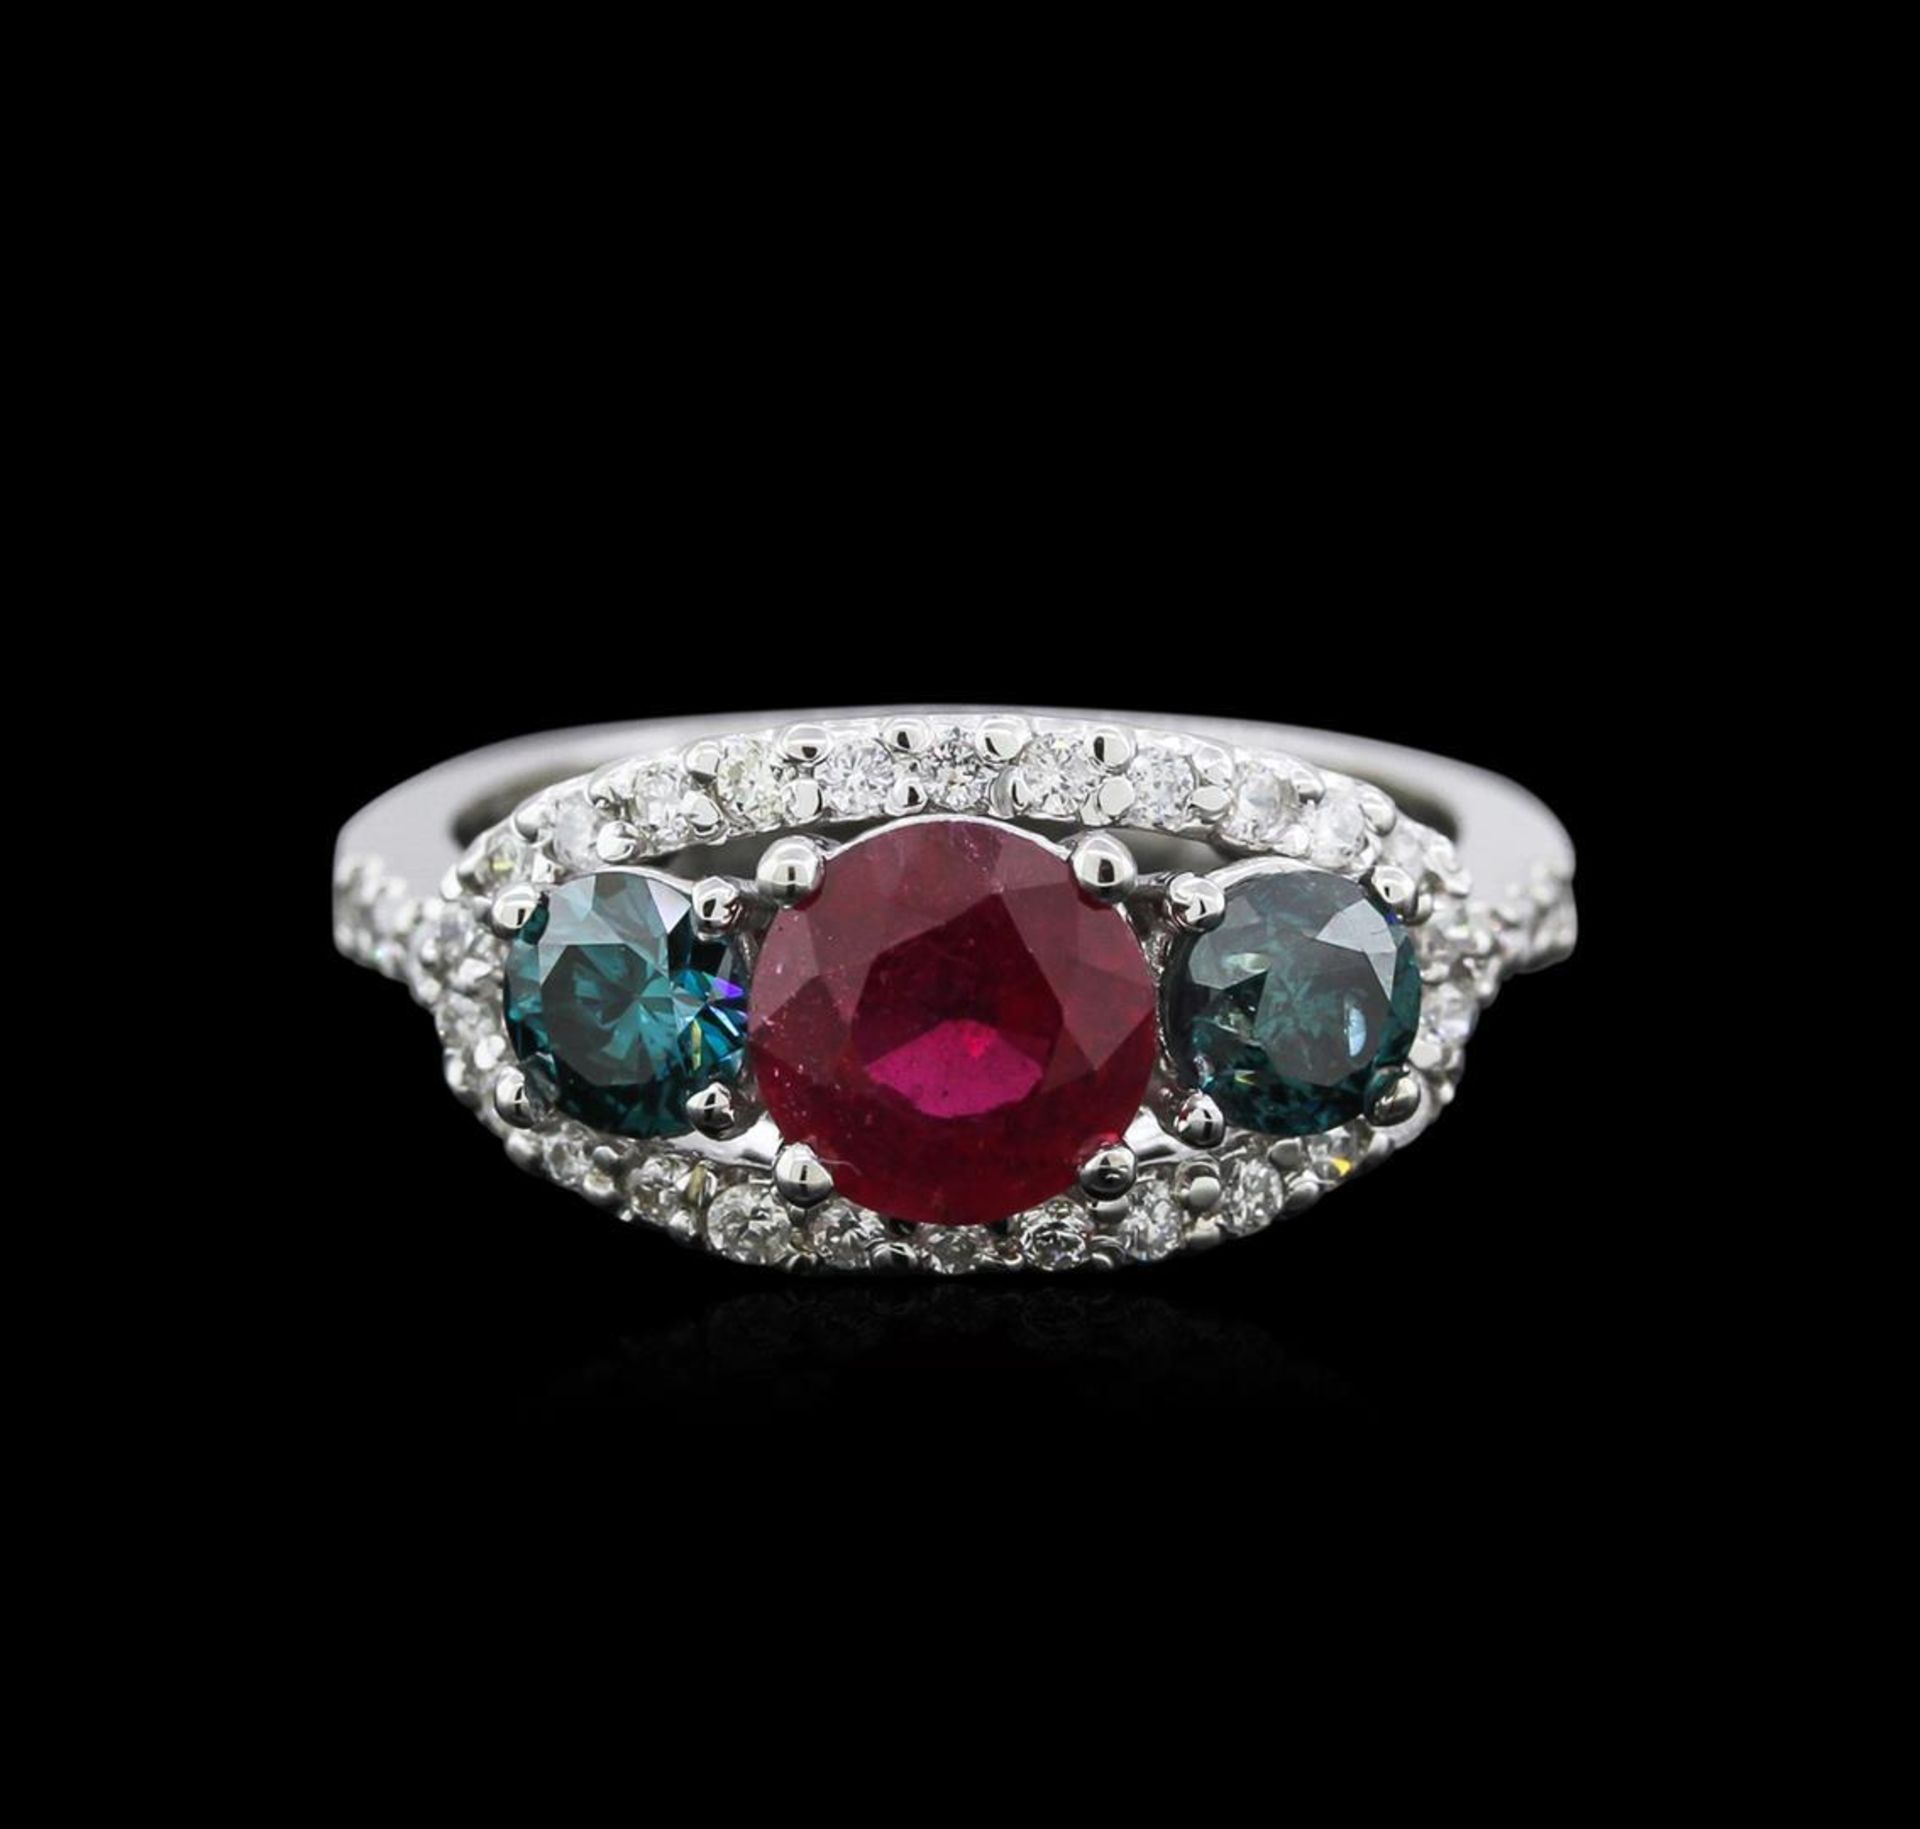 1.40 ctw Ruby and Diamond Ring - 14KT White Gold - Image 2 of 4